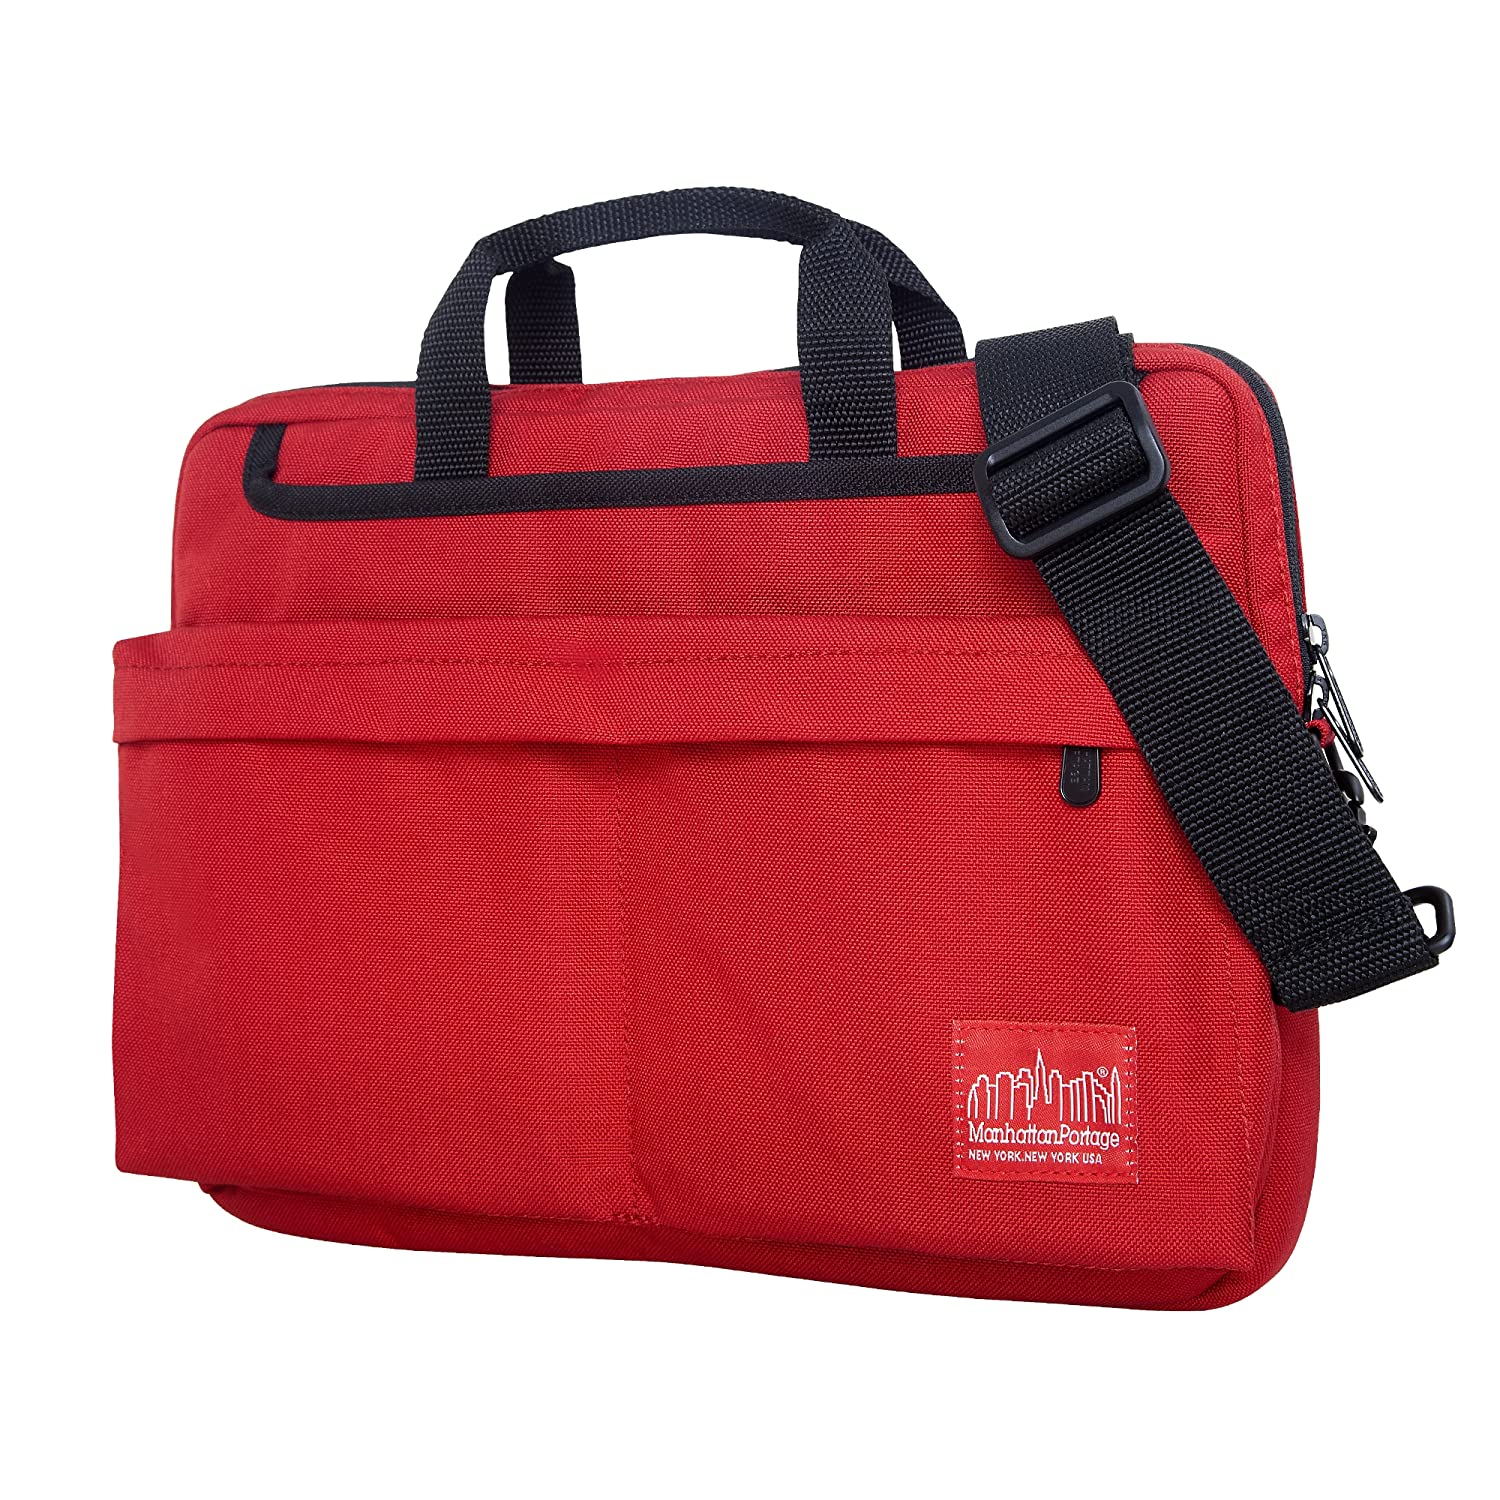 Manhattan Portage Convertible Deluxe Laptop Bag